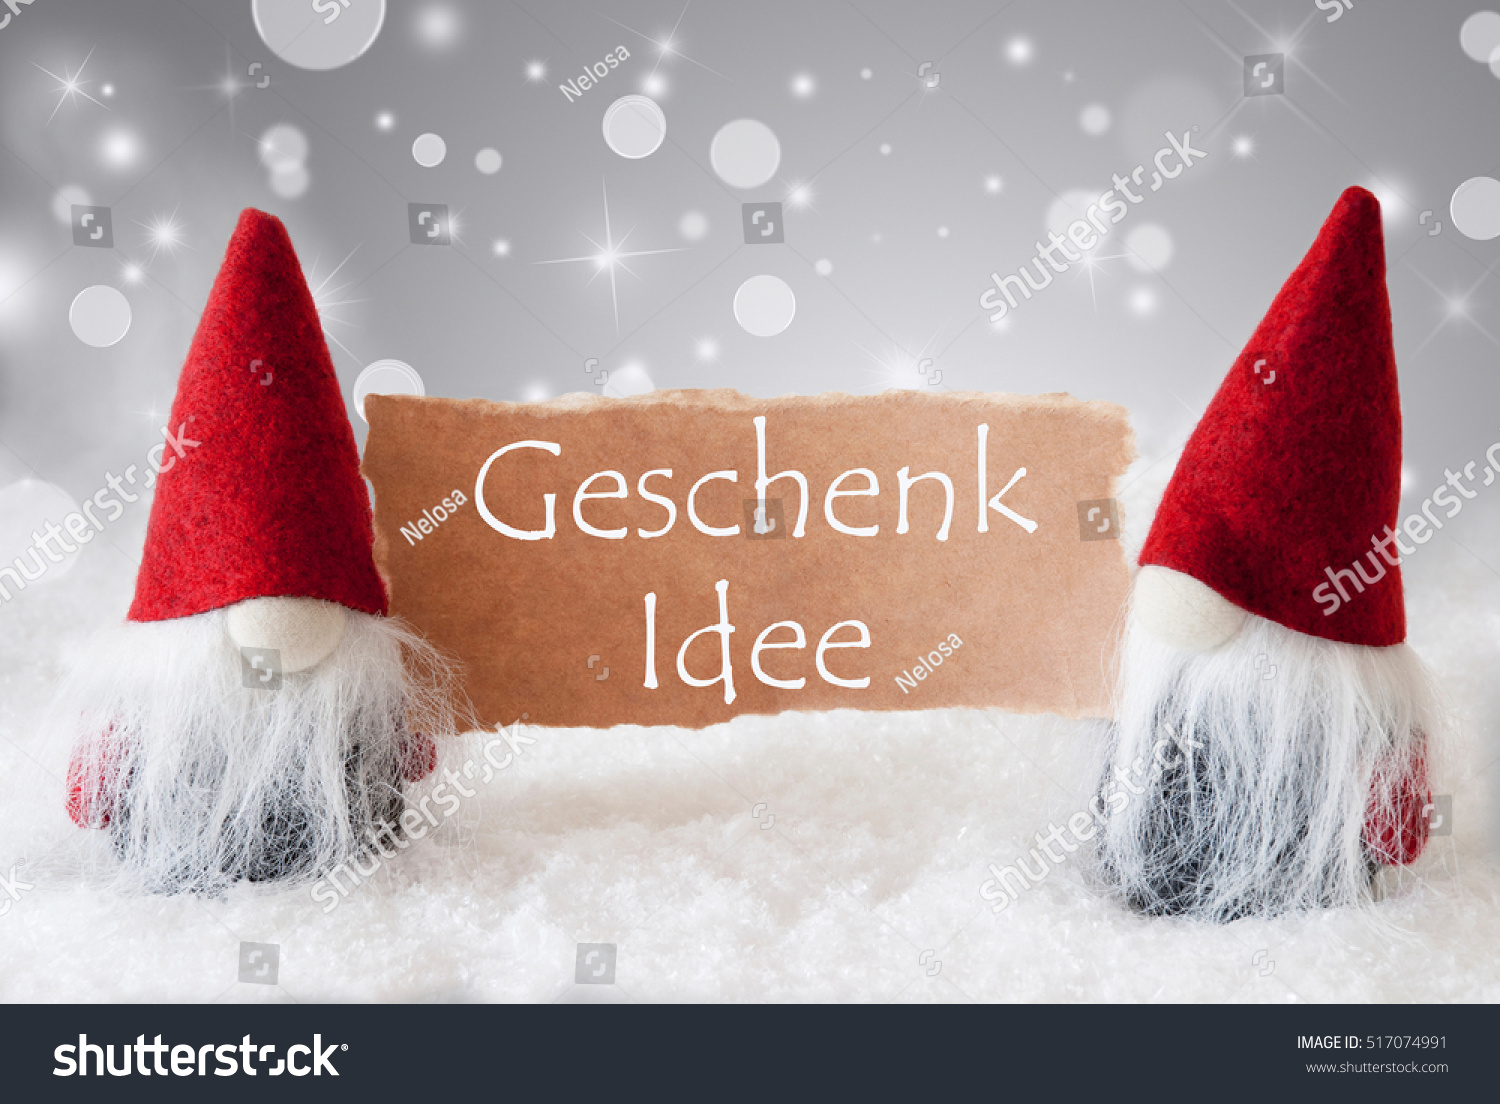 red gnomes with snow geschenk idee means gift idea stock photo 517074991 shutterstock. Black Bedroom Furniture Sets. Home Design Ideas